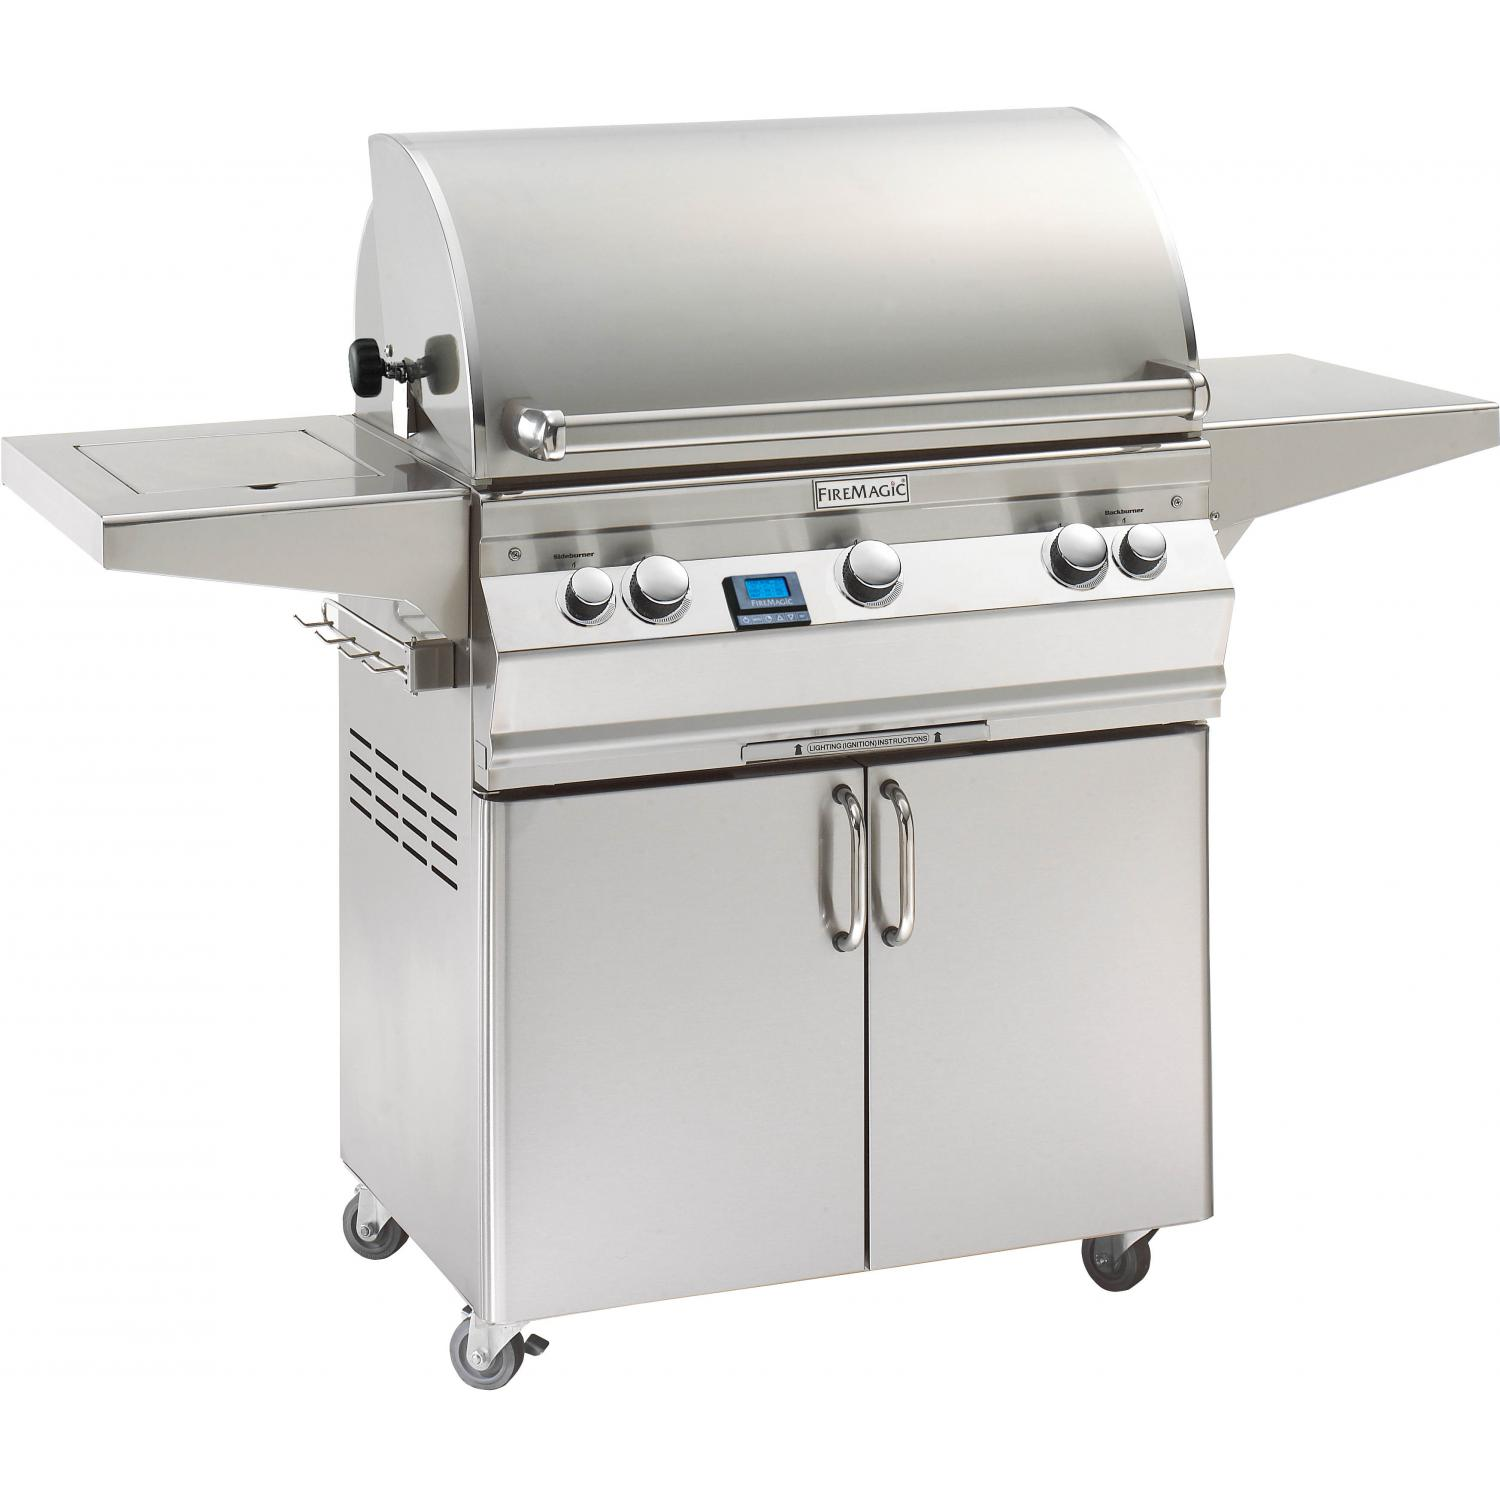 Fire Magic Aurora A540s All Infrared Natural Gas Grill With Single Side Burner And Rotisserie On Cart - A540s-6A1N-62 2893988